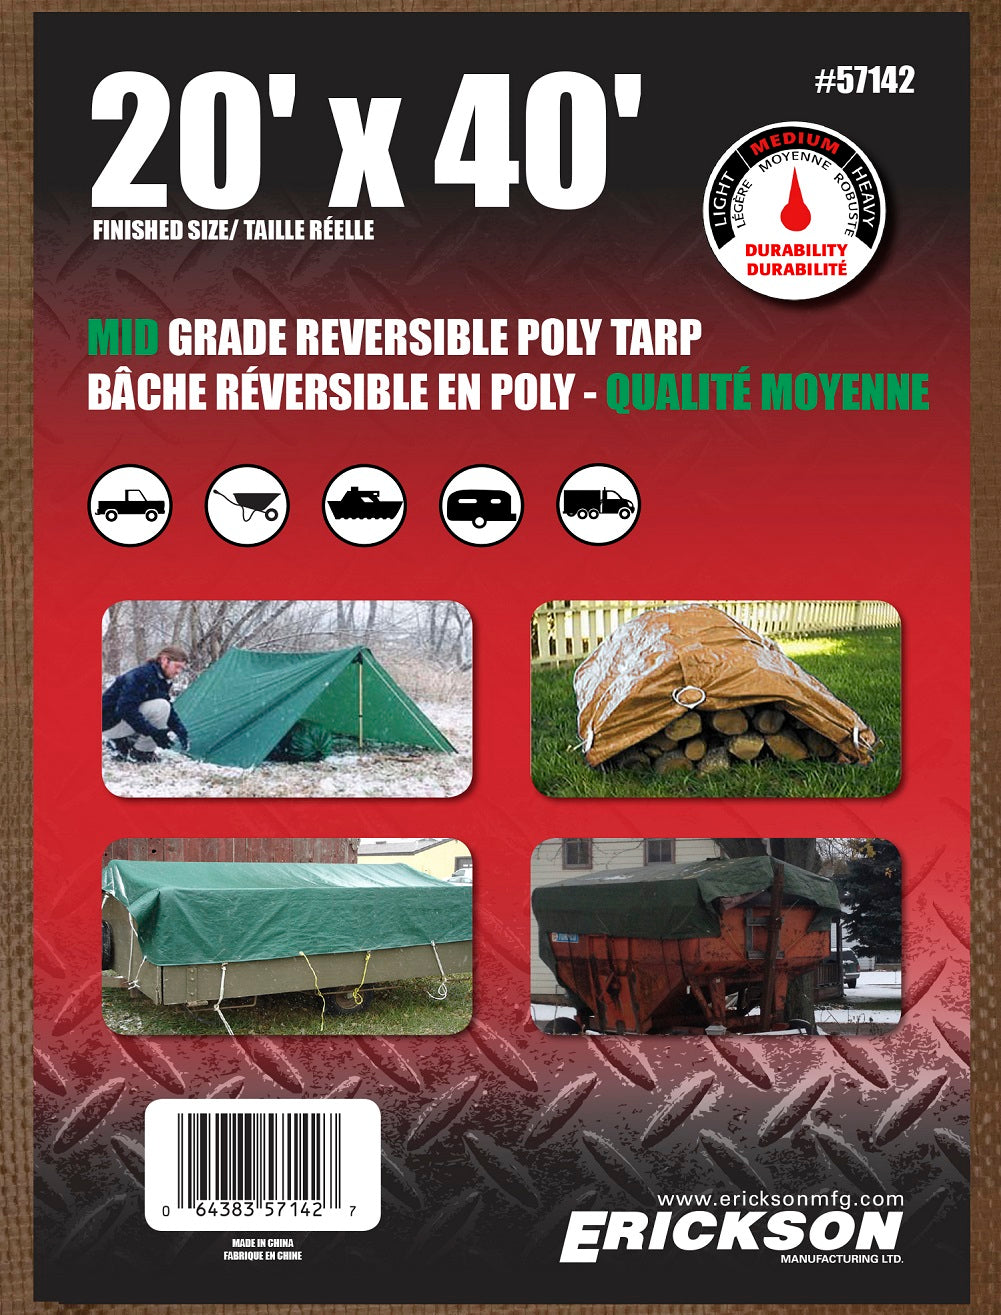 20 x 40 Medium-Duty Poly Tarp Brown/Green